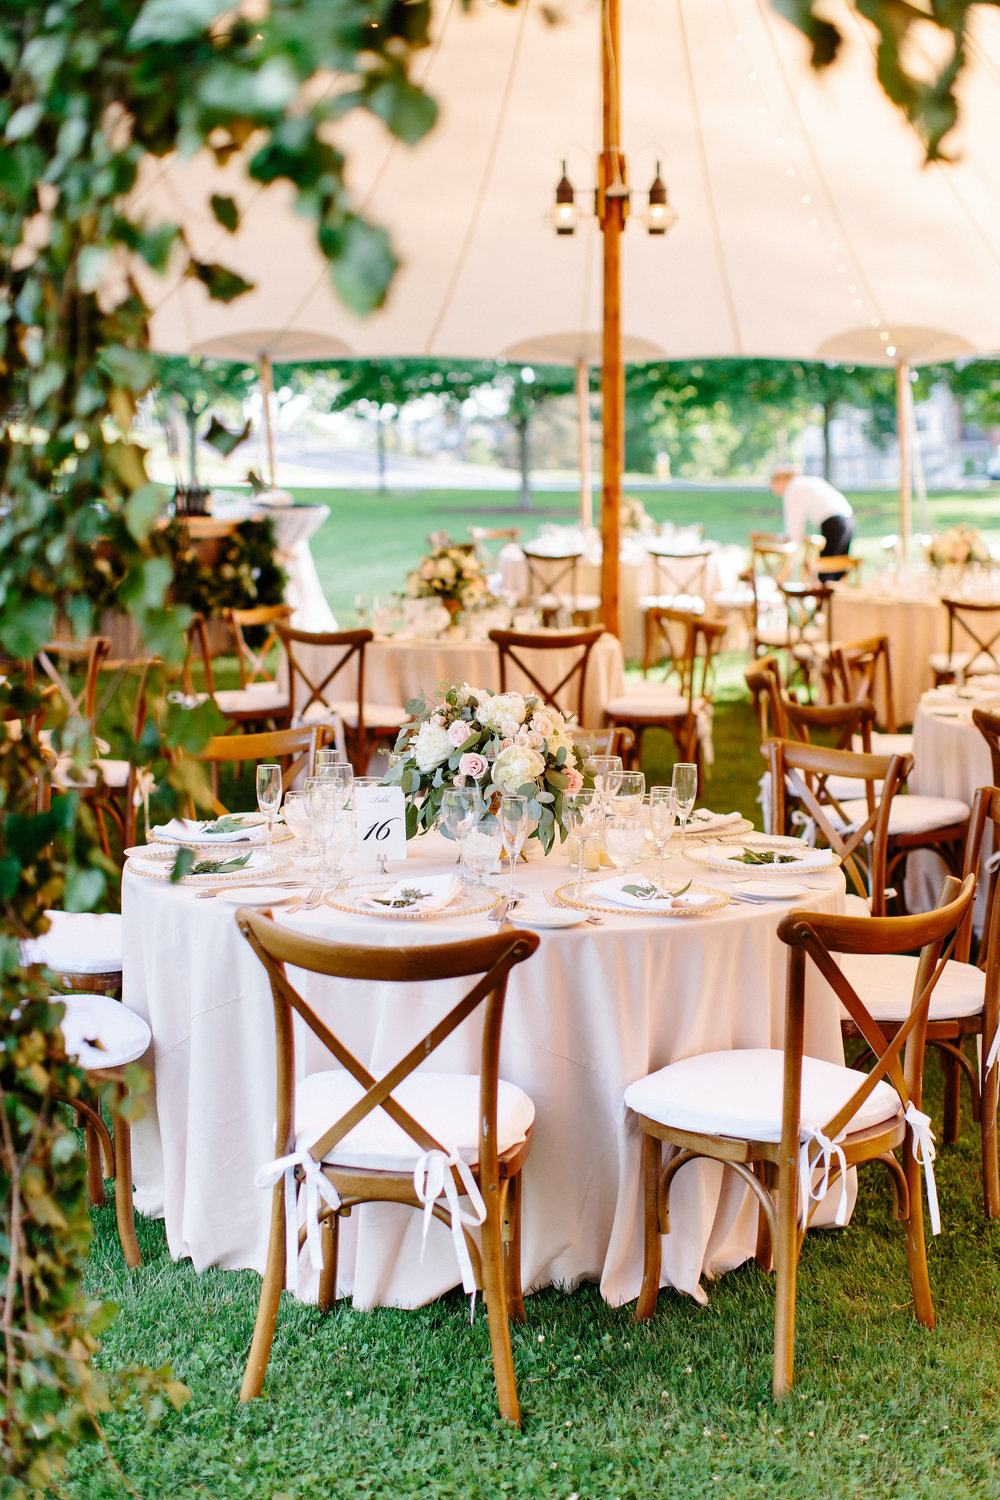 Reception tent and tables at Colgate University in Hamilton, NY